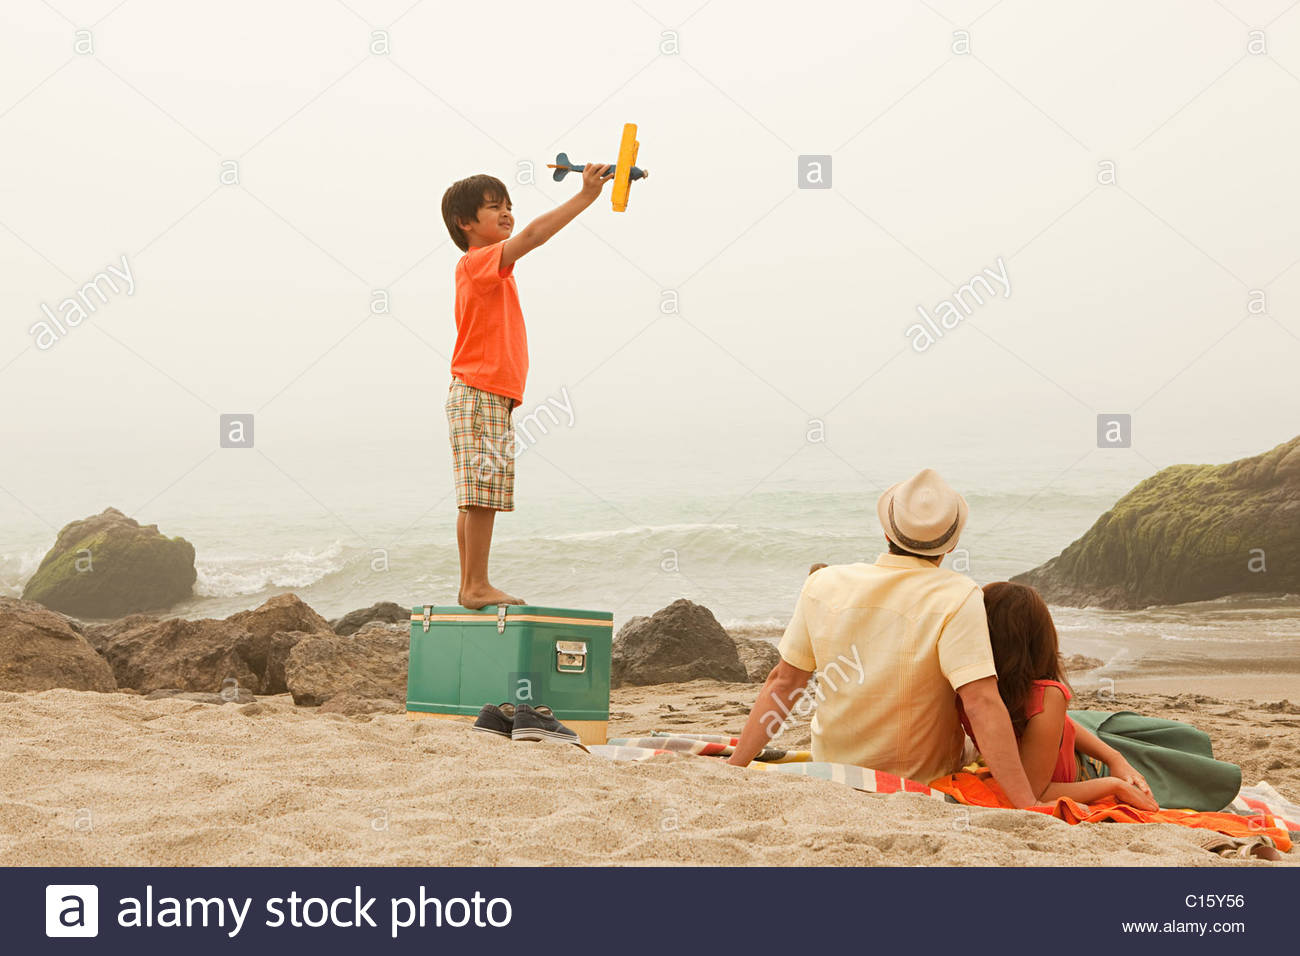 Family on beach, boy playing with toy plane - Stock Image